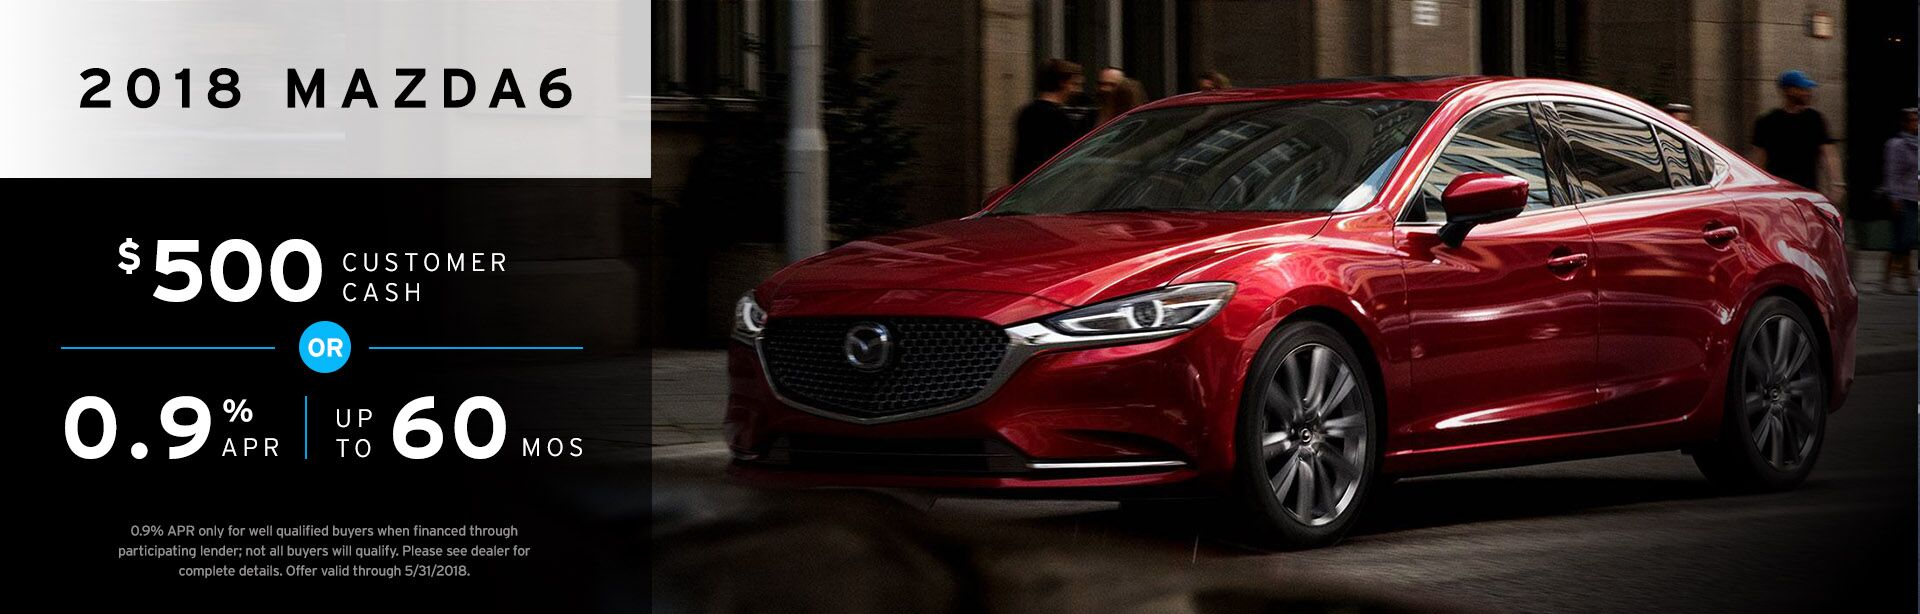 2018 Mazda6 May Offer